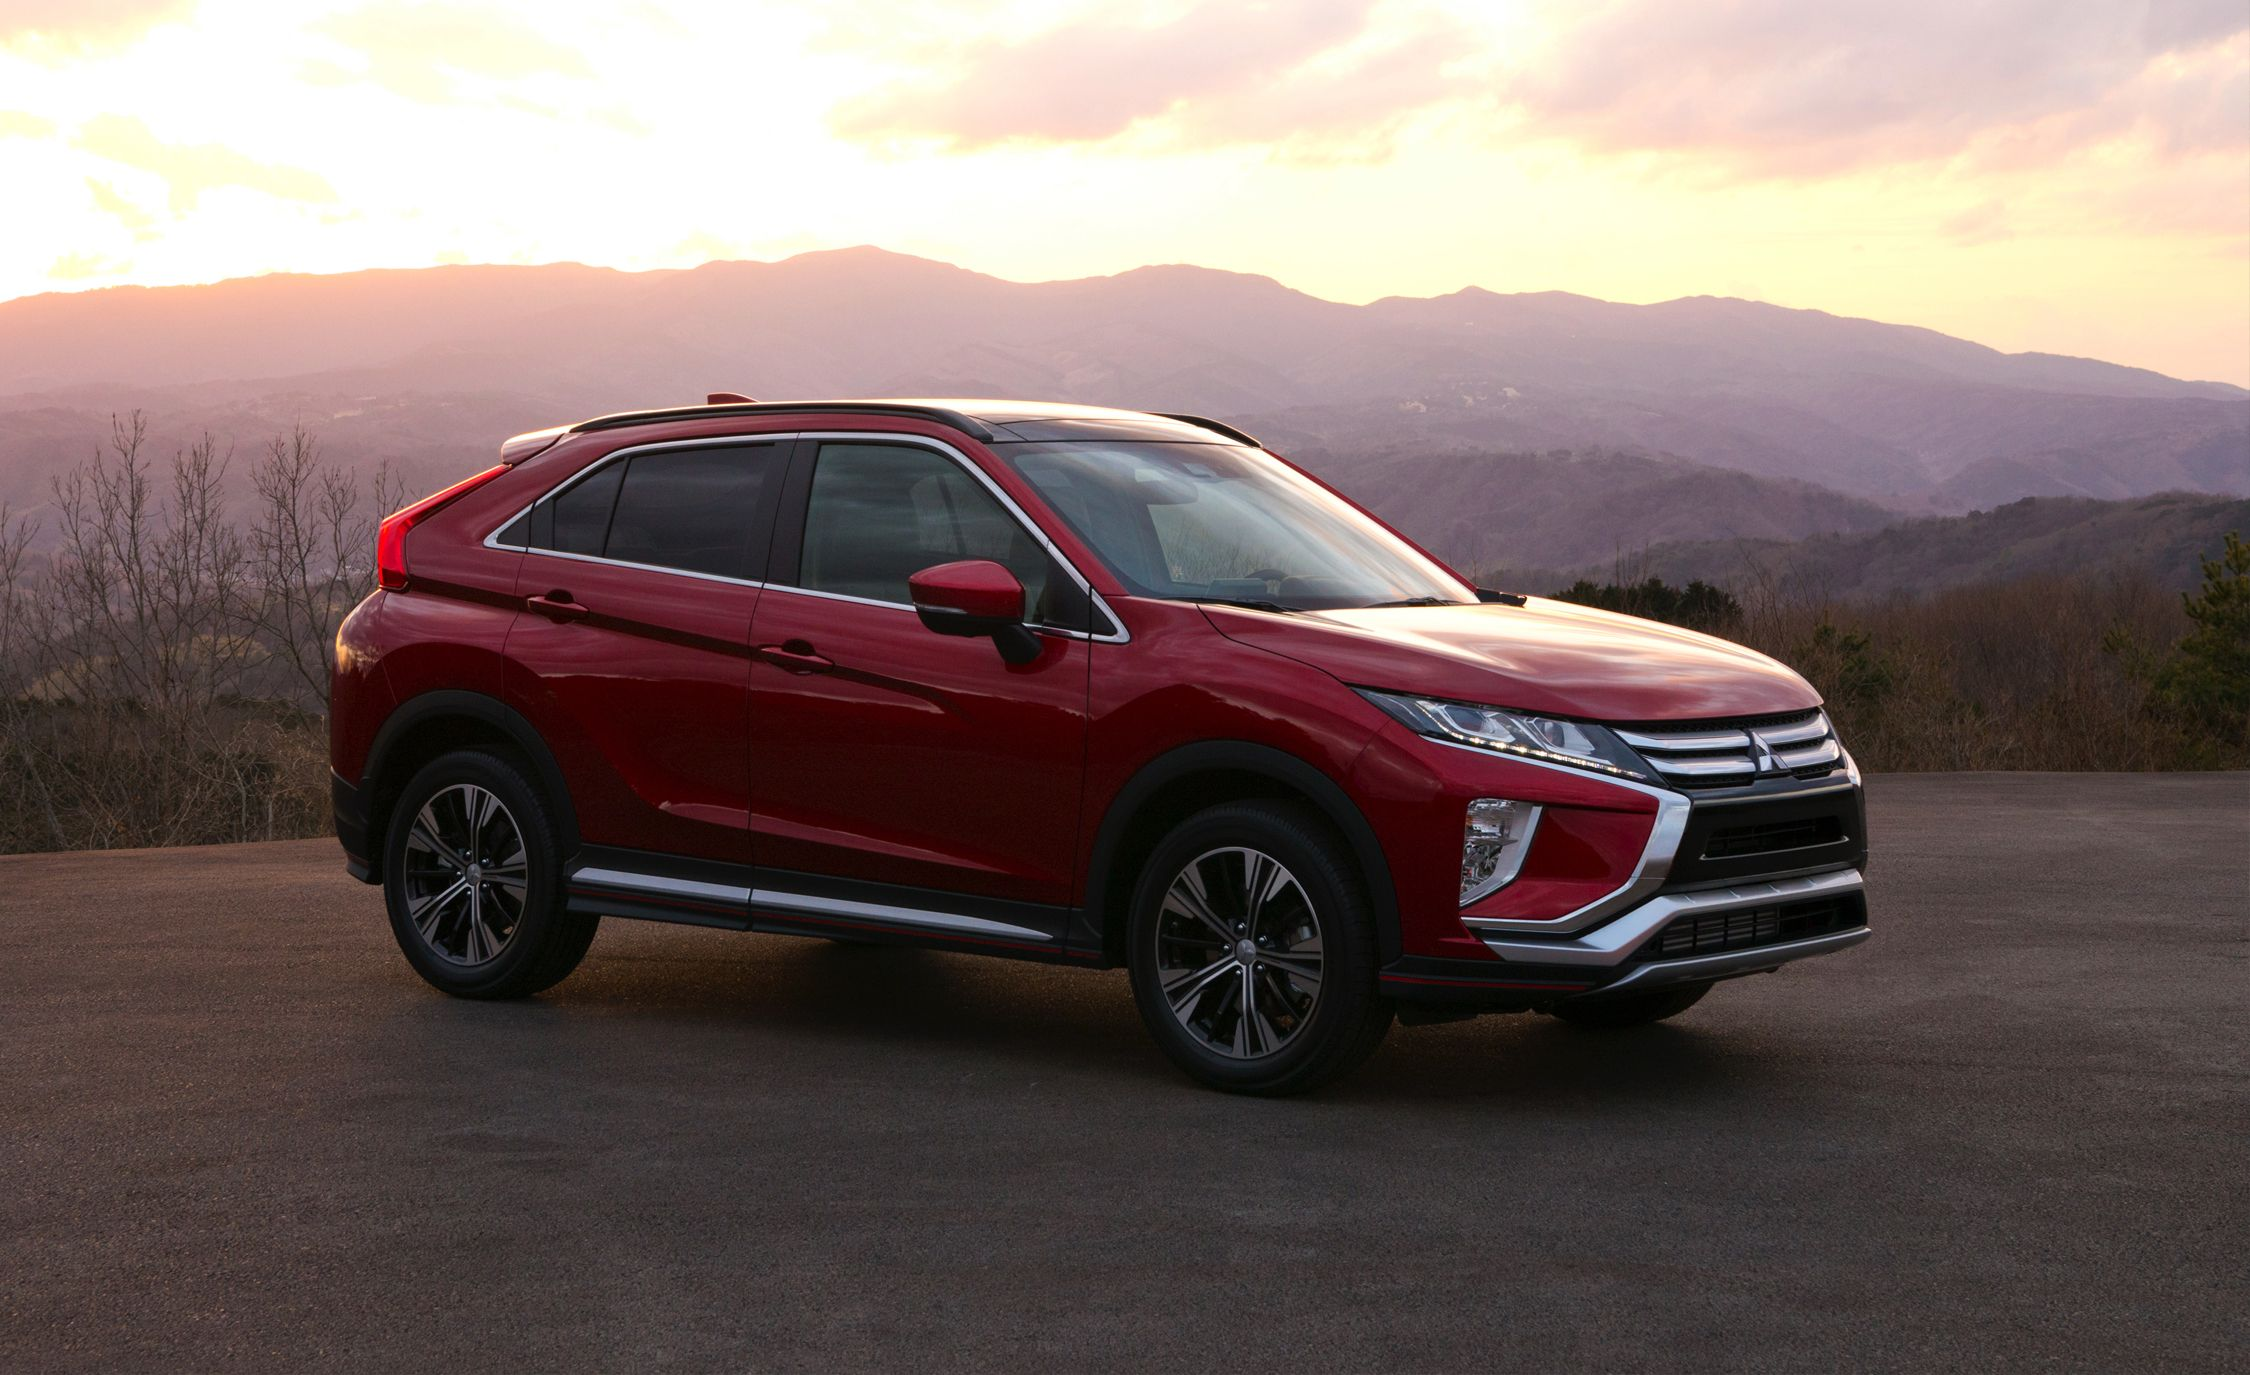 2018 Mitsubishi Eclipse Cross Photos And Info News Car